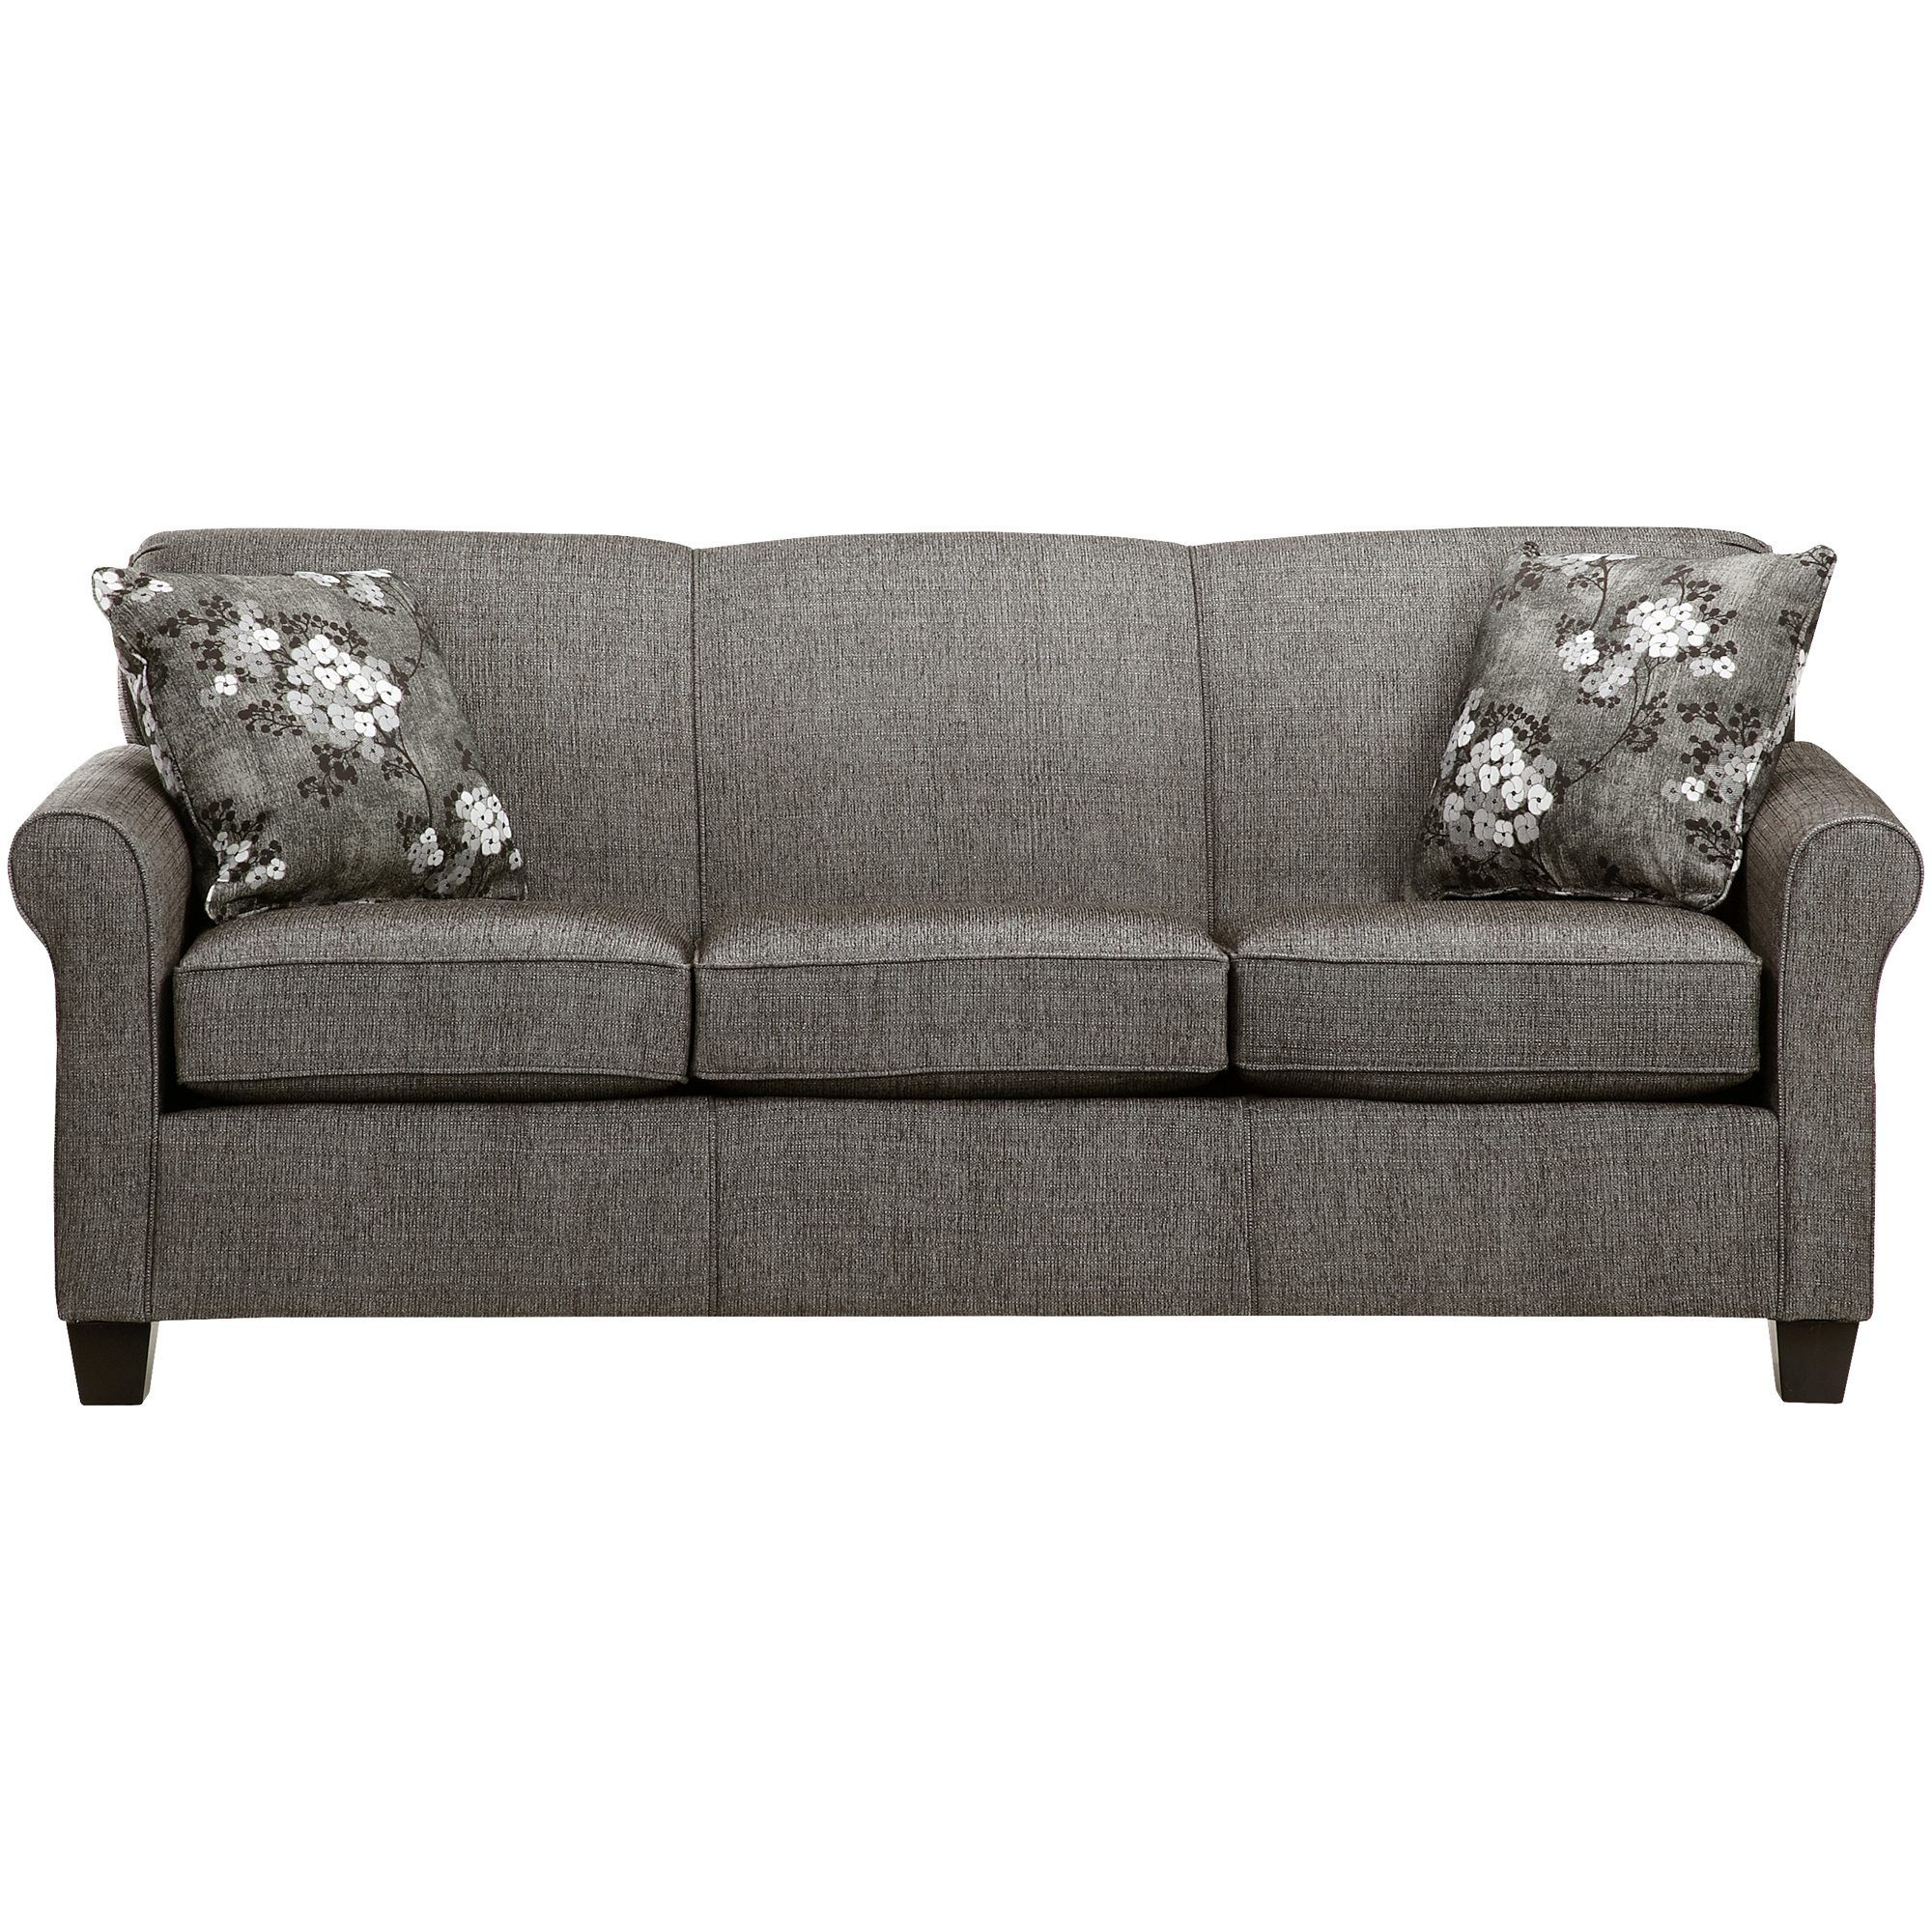 Dimensions By England | York Granite Queen Visco Sleeper Sofa